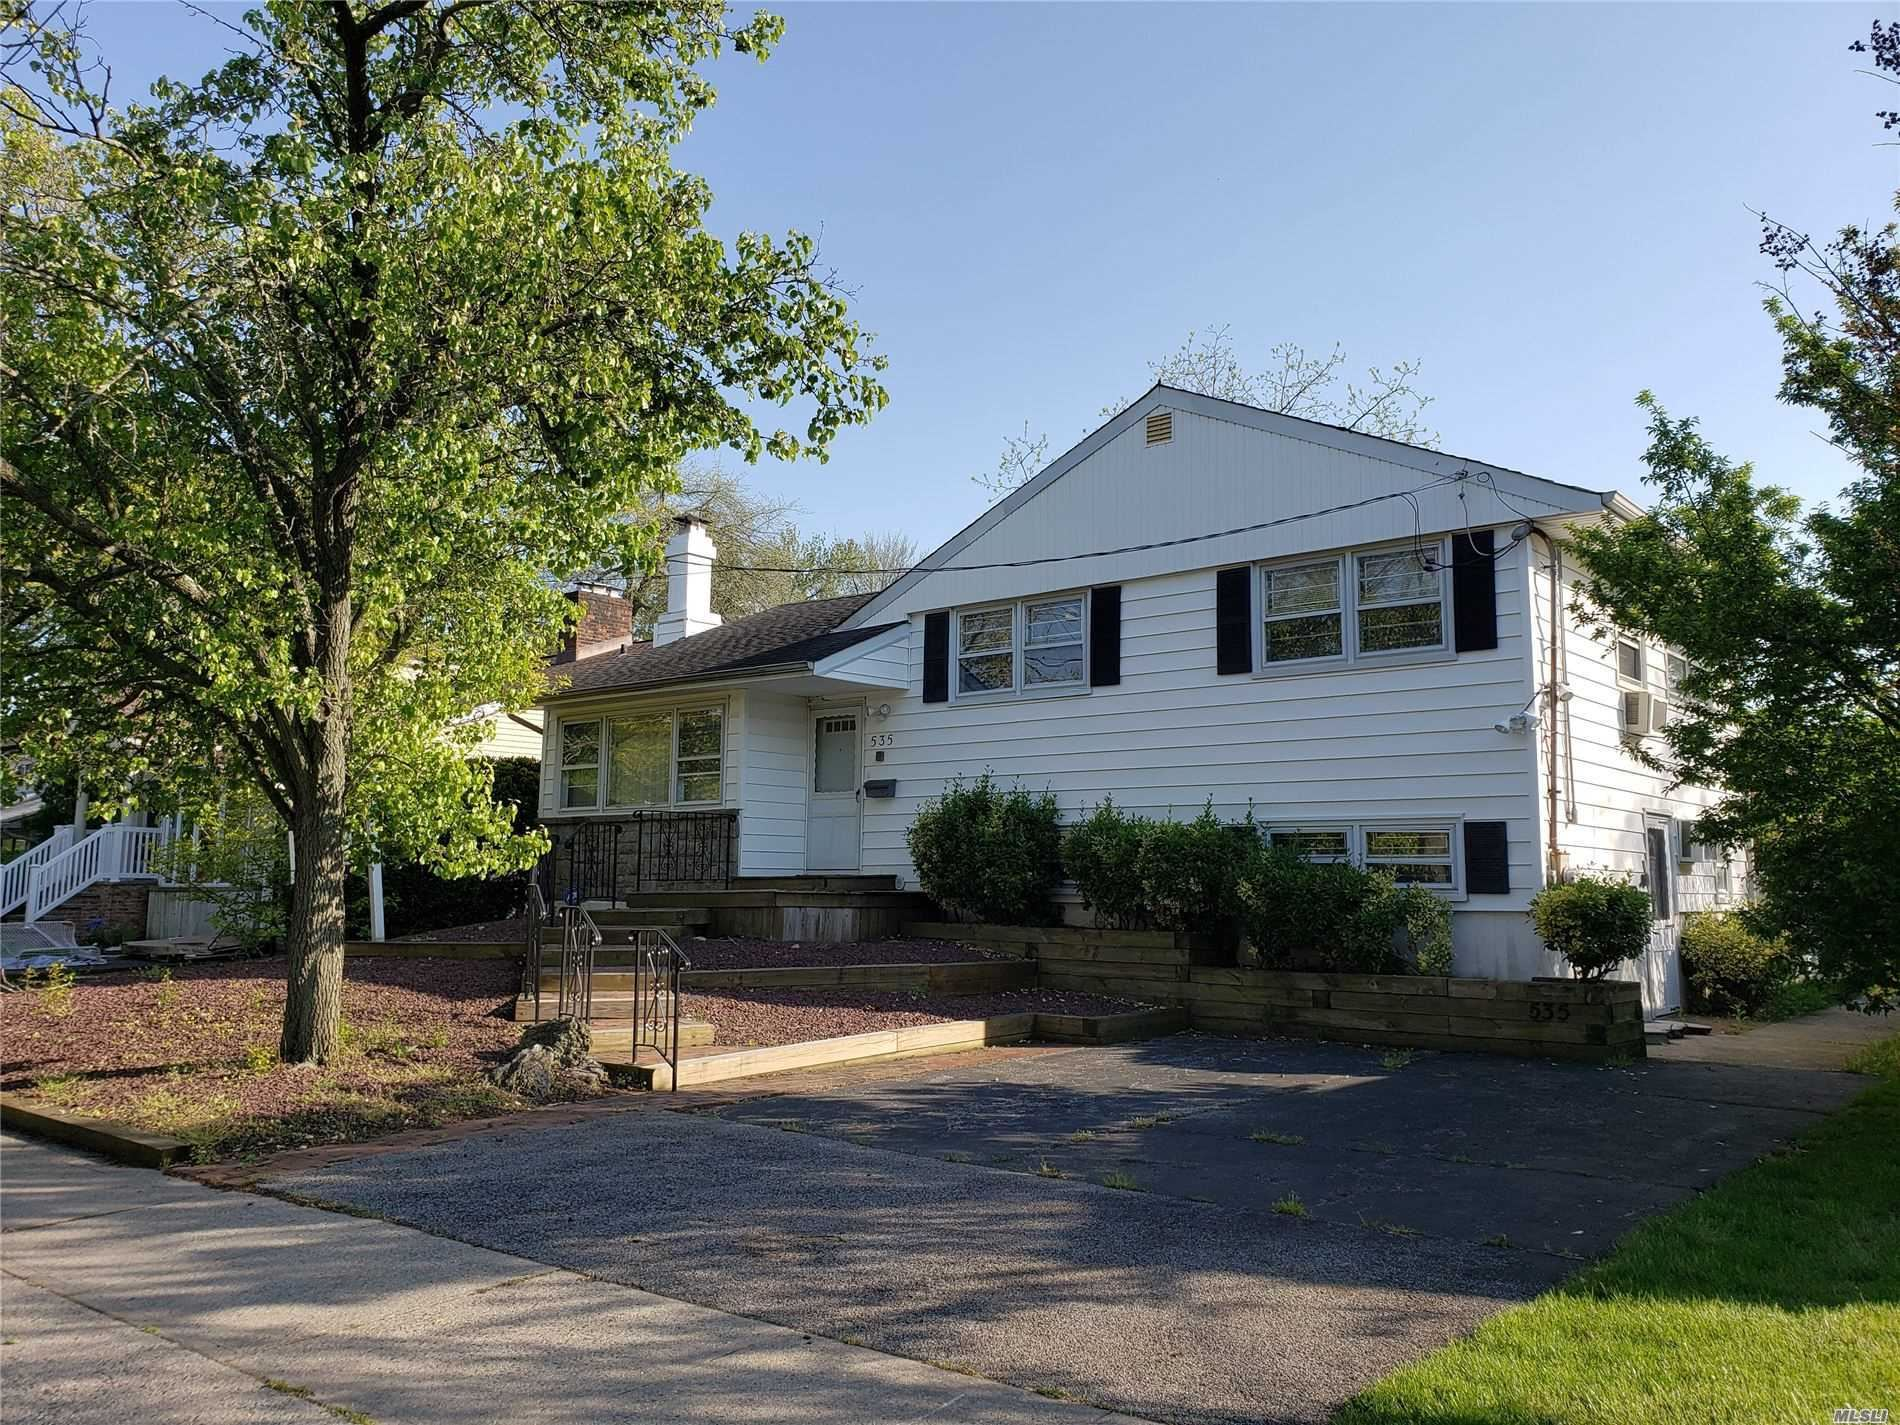 535 Island Ave, Woodmere, NY 11598 - MLS#: 3200512